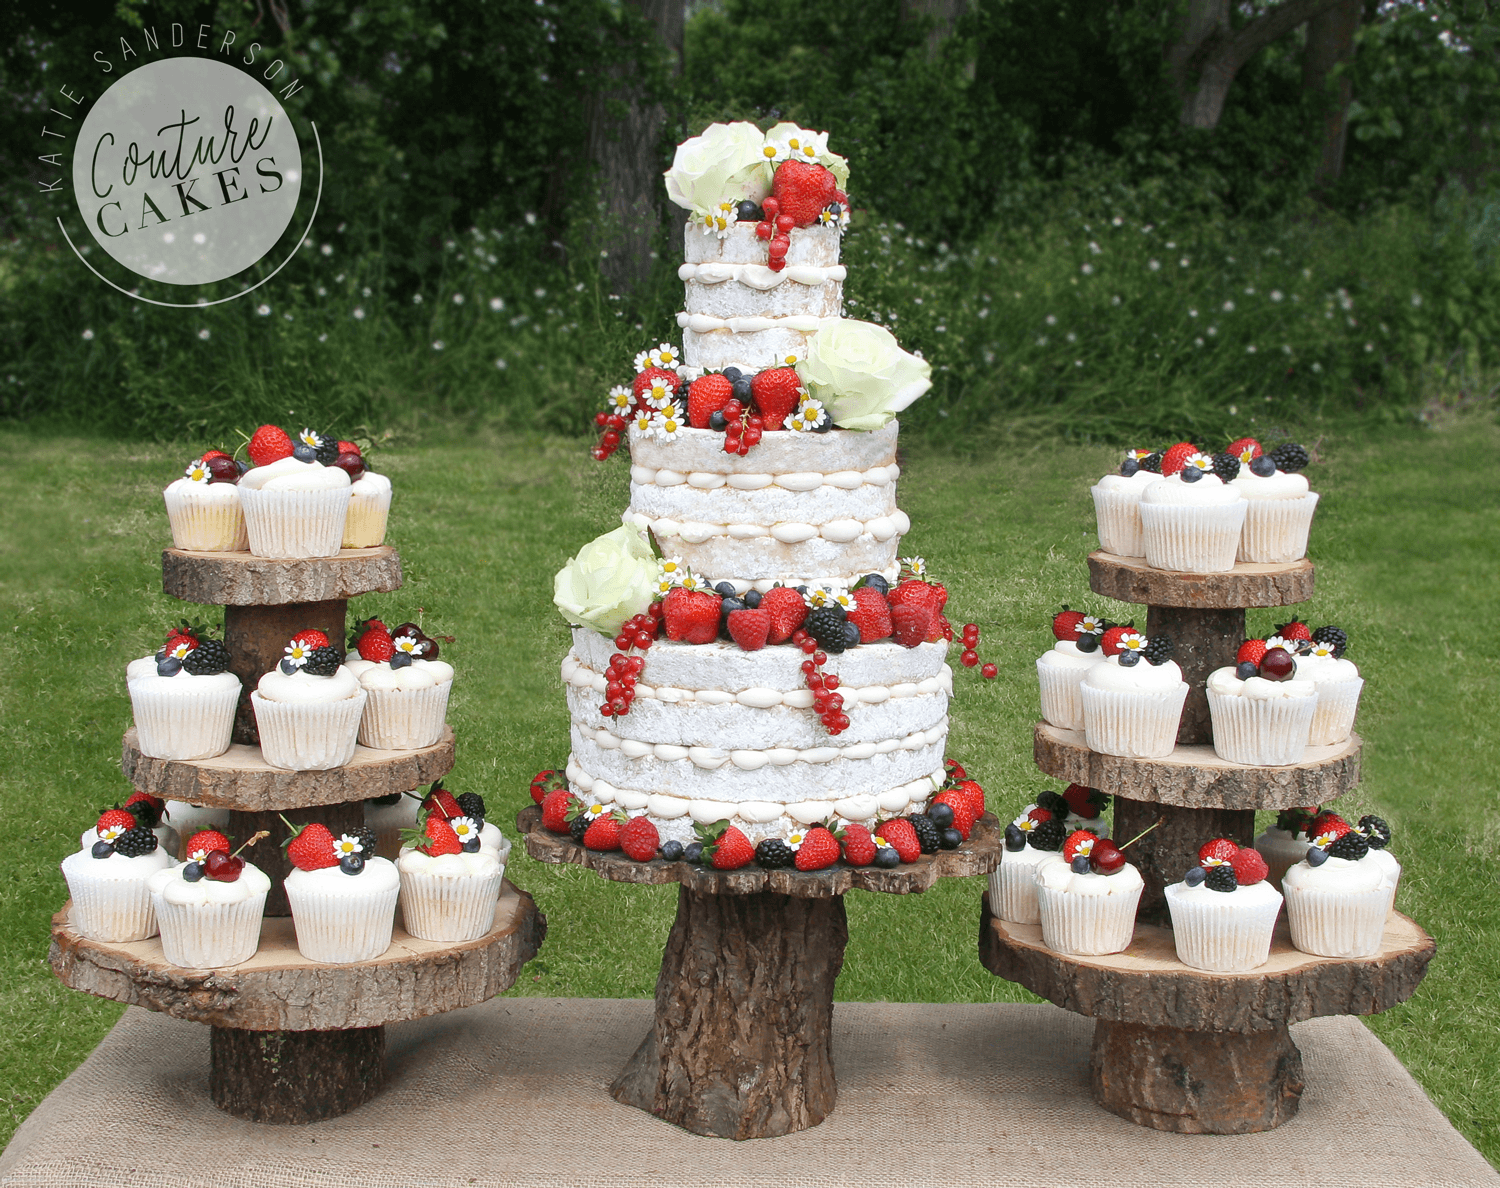 Naked Cake serves 110 portions, Price £355, plus £3.50 per cupcake